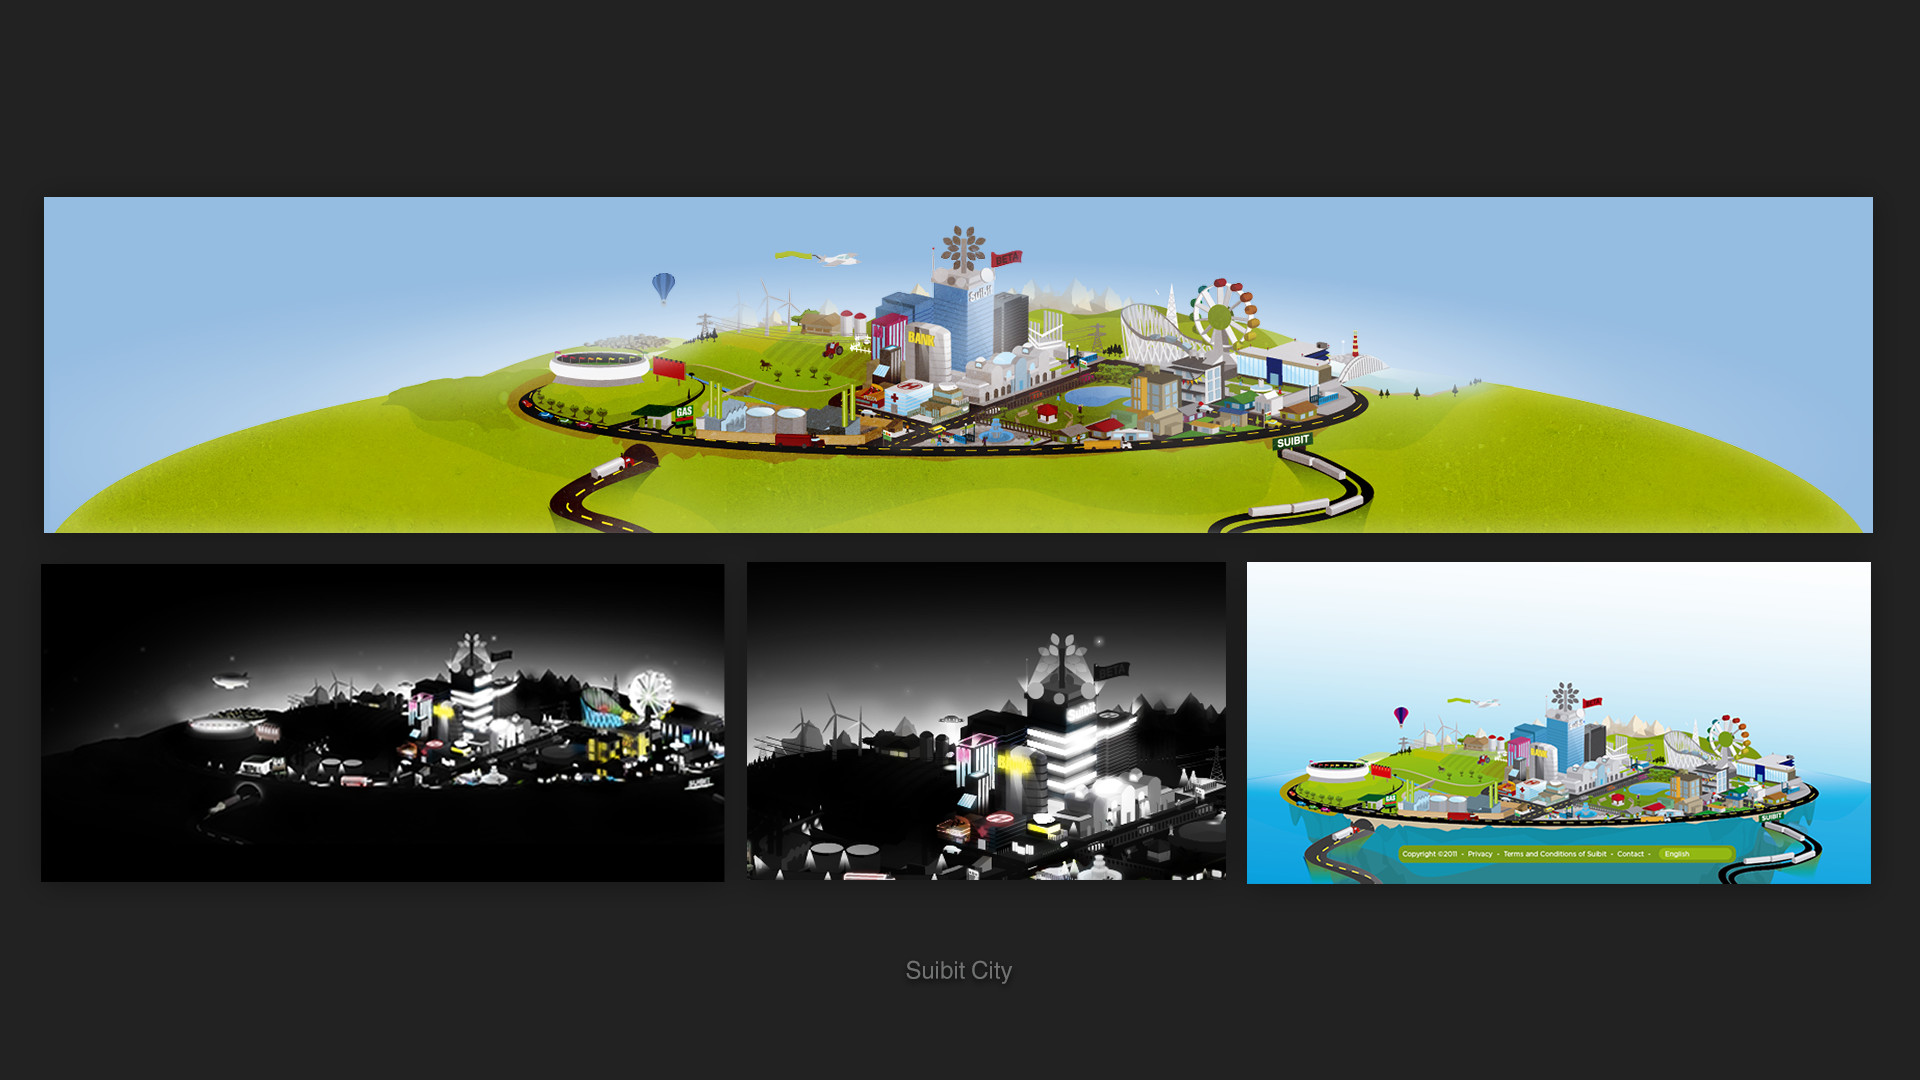 Suibit City was an illustration for the bottom of the page, it switched between day and night and was designed to support advertisement.